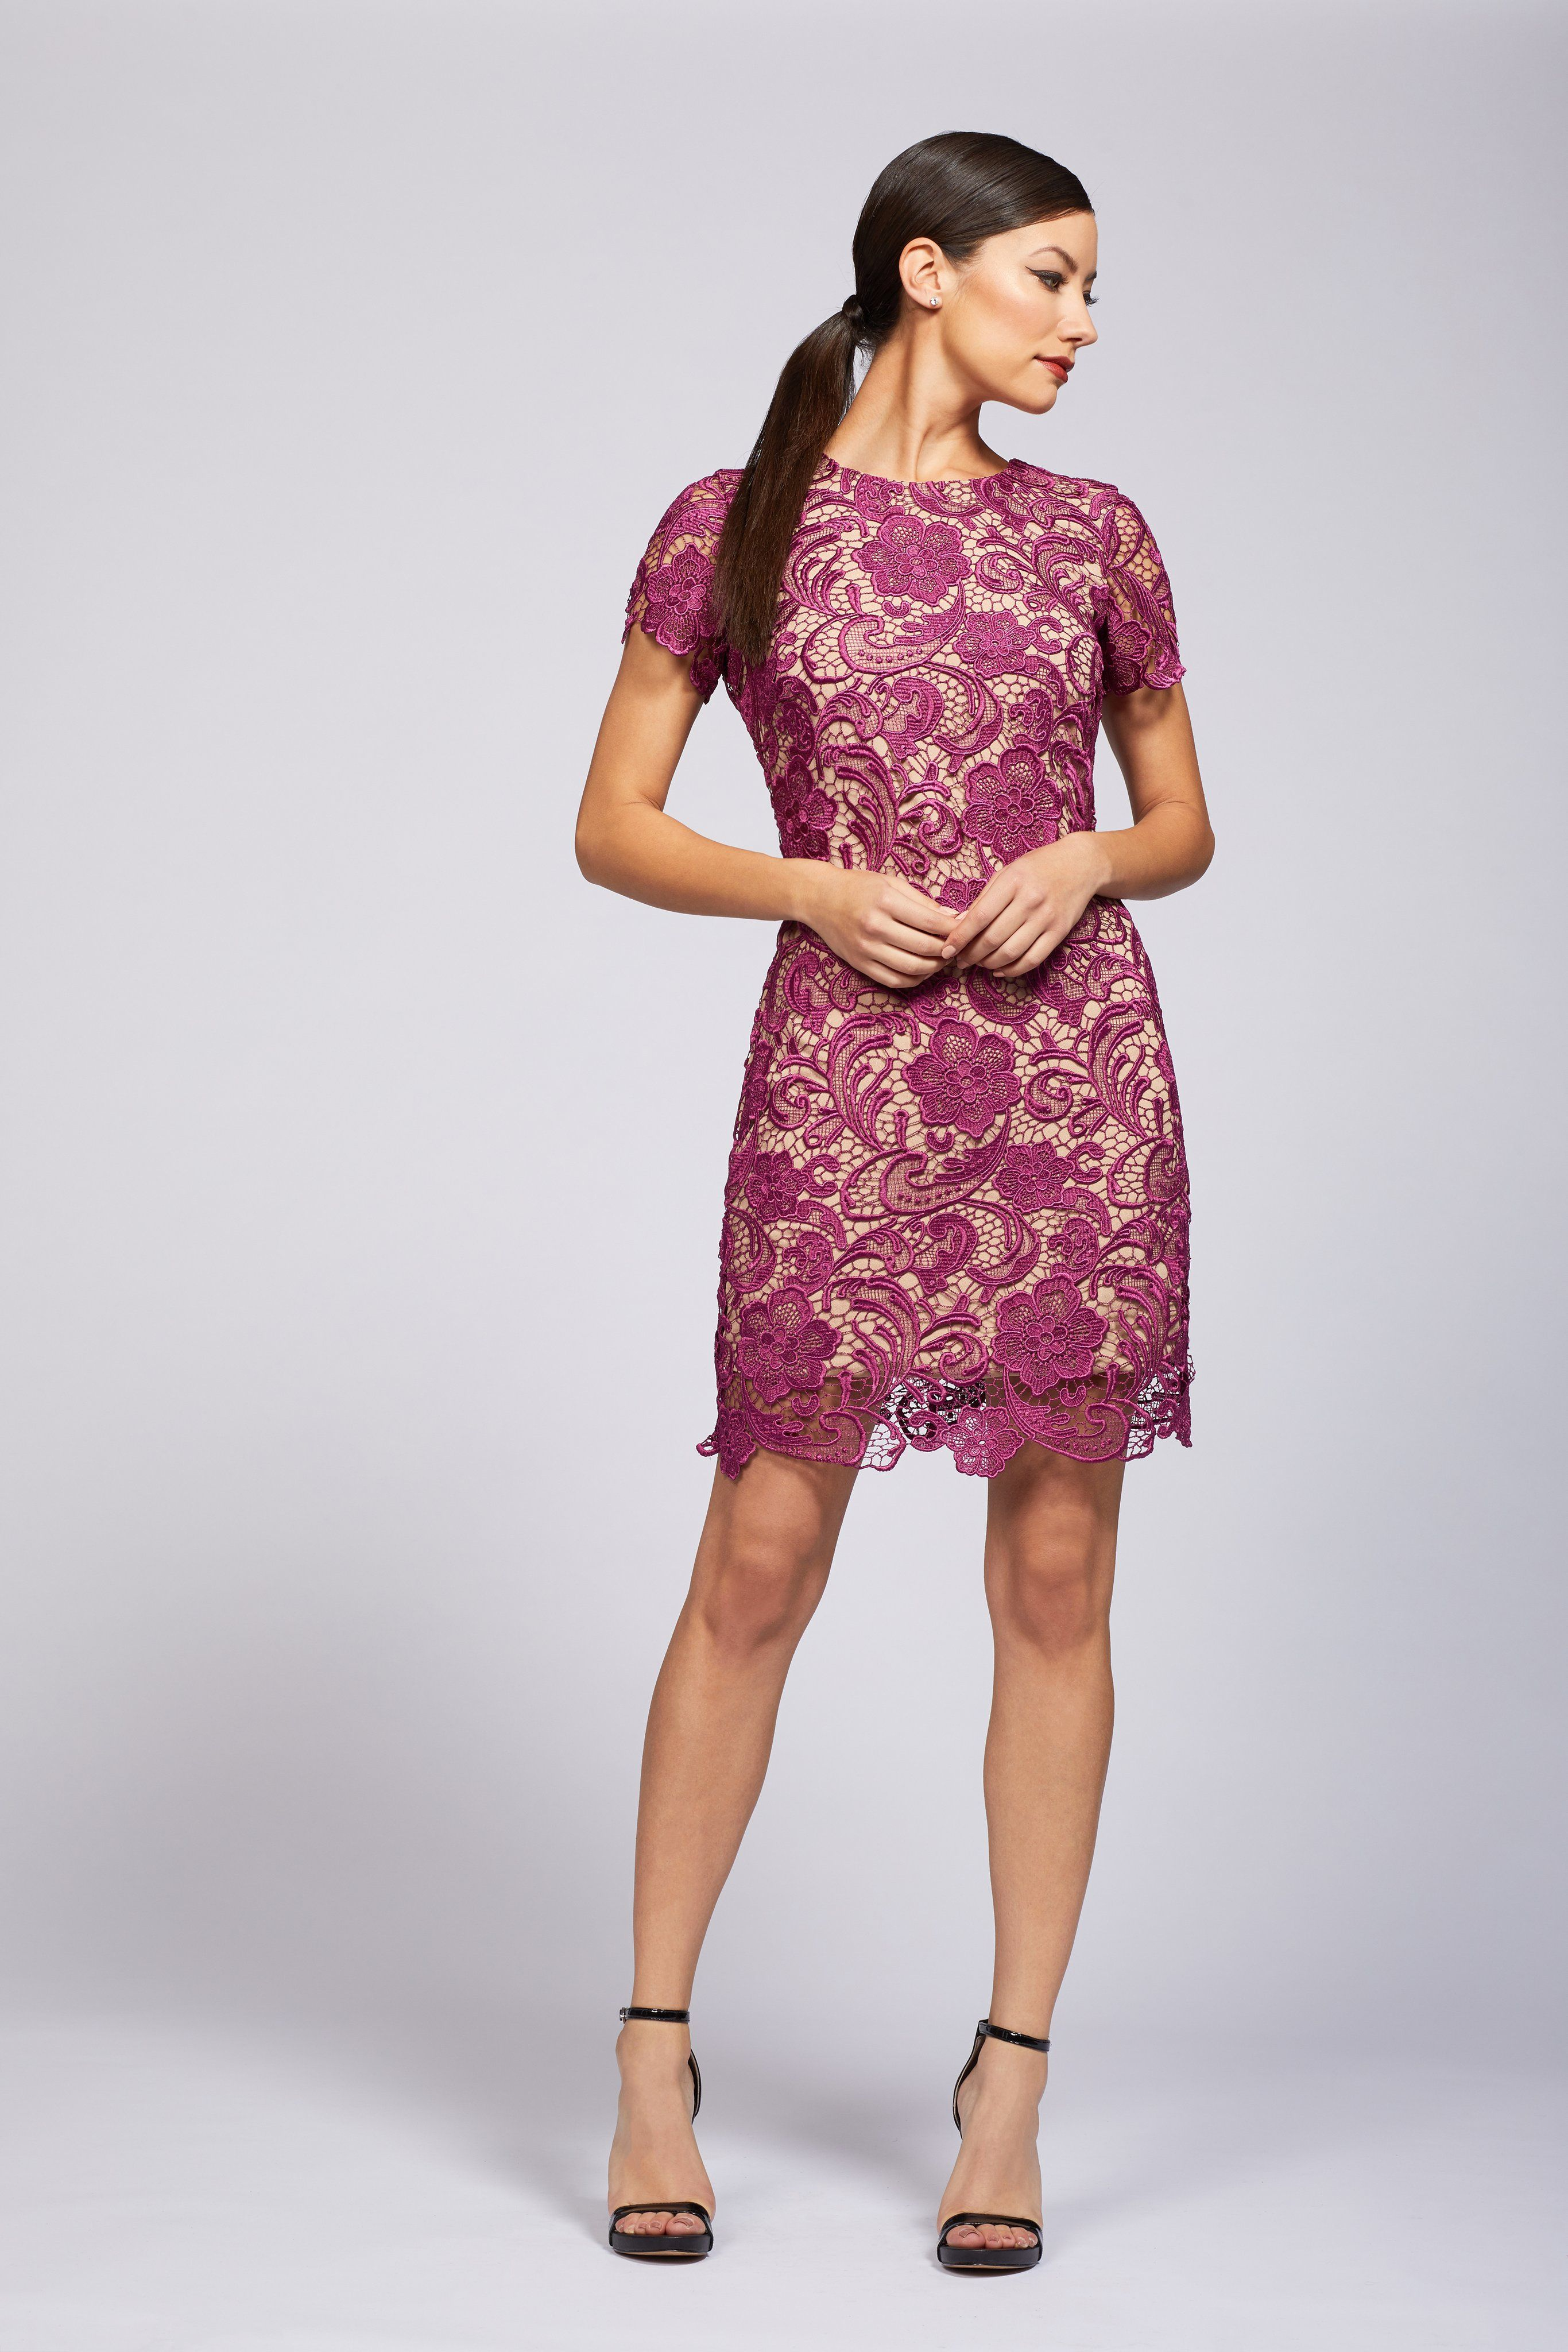 373691d5 Anna Crochet Lace Shift Dress From DRESS THE POPULATION – Today's Fashion  Item